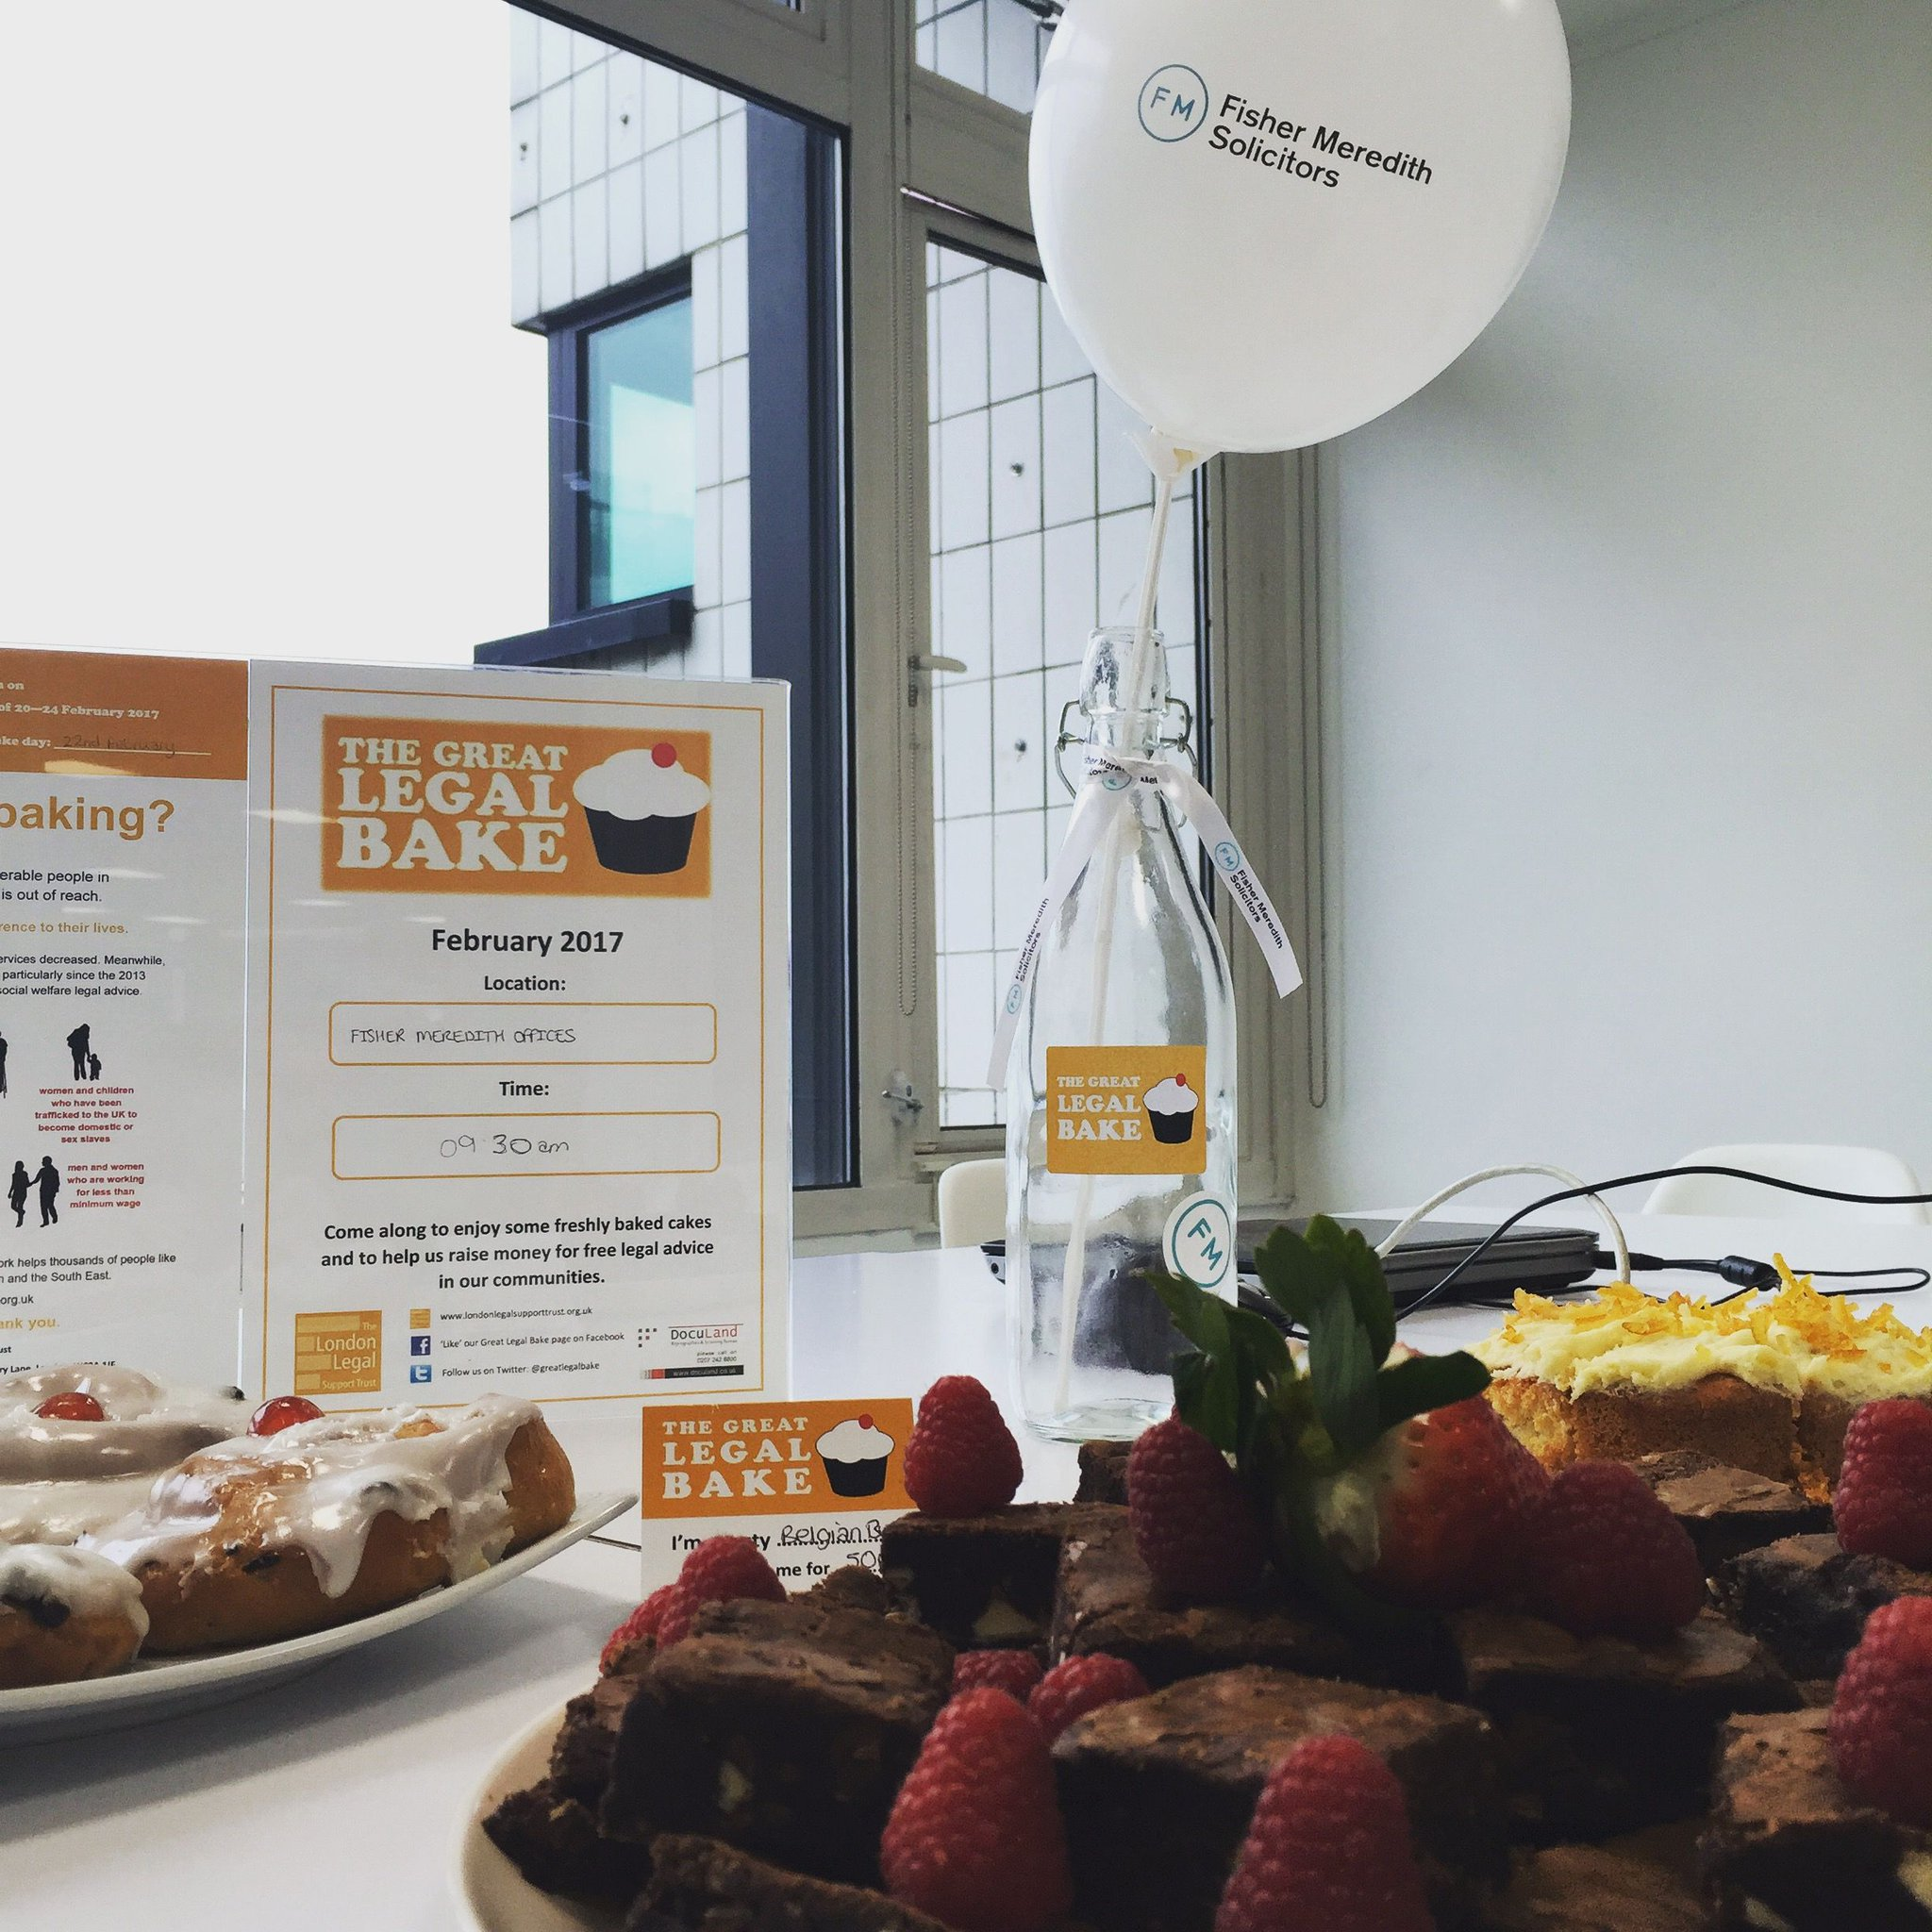 We had a lovely (and slightly sickly!) day raising funds for @londonlegal during our #GreatLegalBake today! @greatlegalbake #fundraiser #law https://t.co/LKUyon2xfi